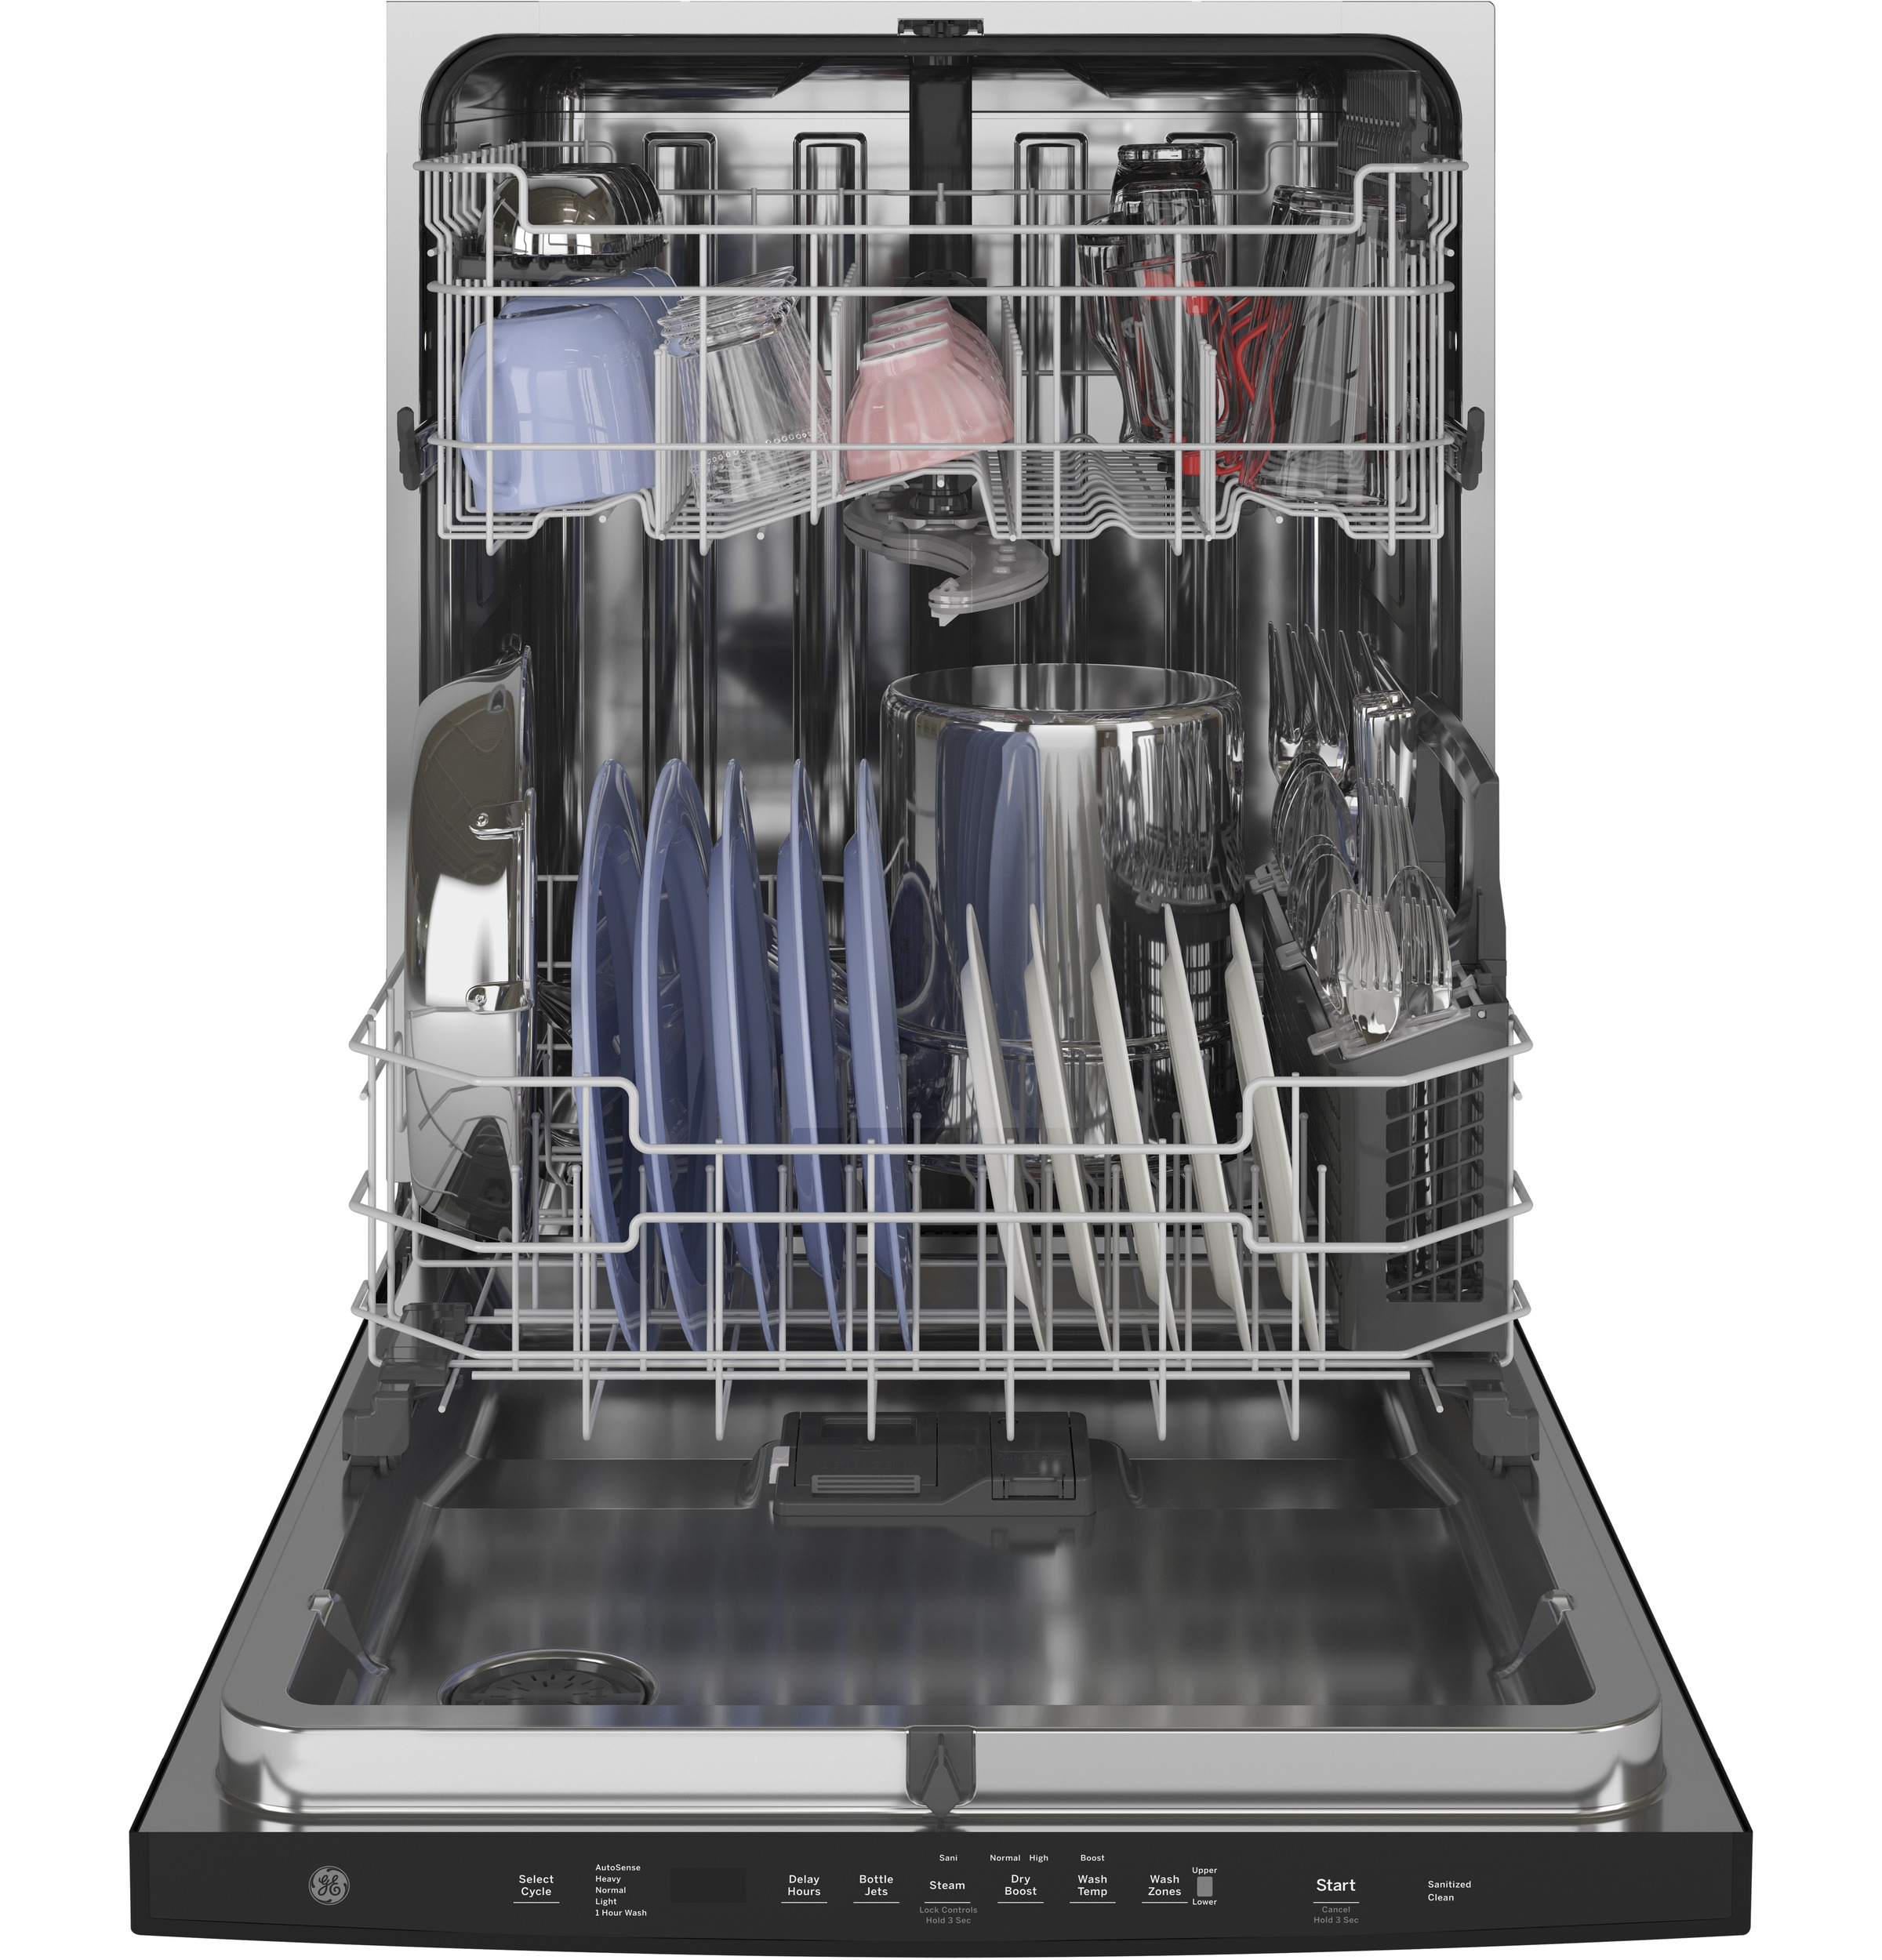 Model: GDT645SGNBB | GE GE® Top Control with Stainless Steel Interior Dishwasher with Sanitize Cycle & Dry Boost with Fan Assist